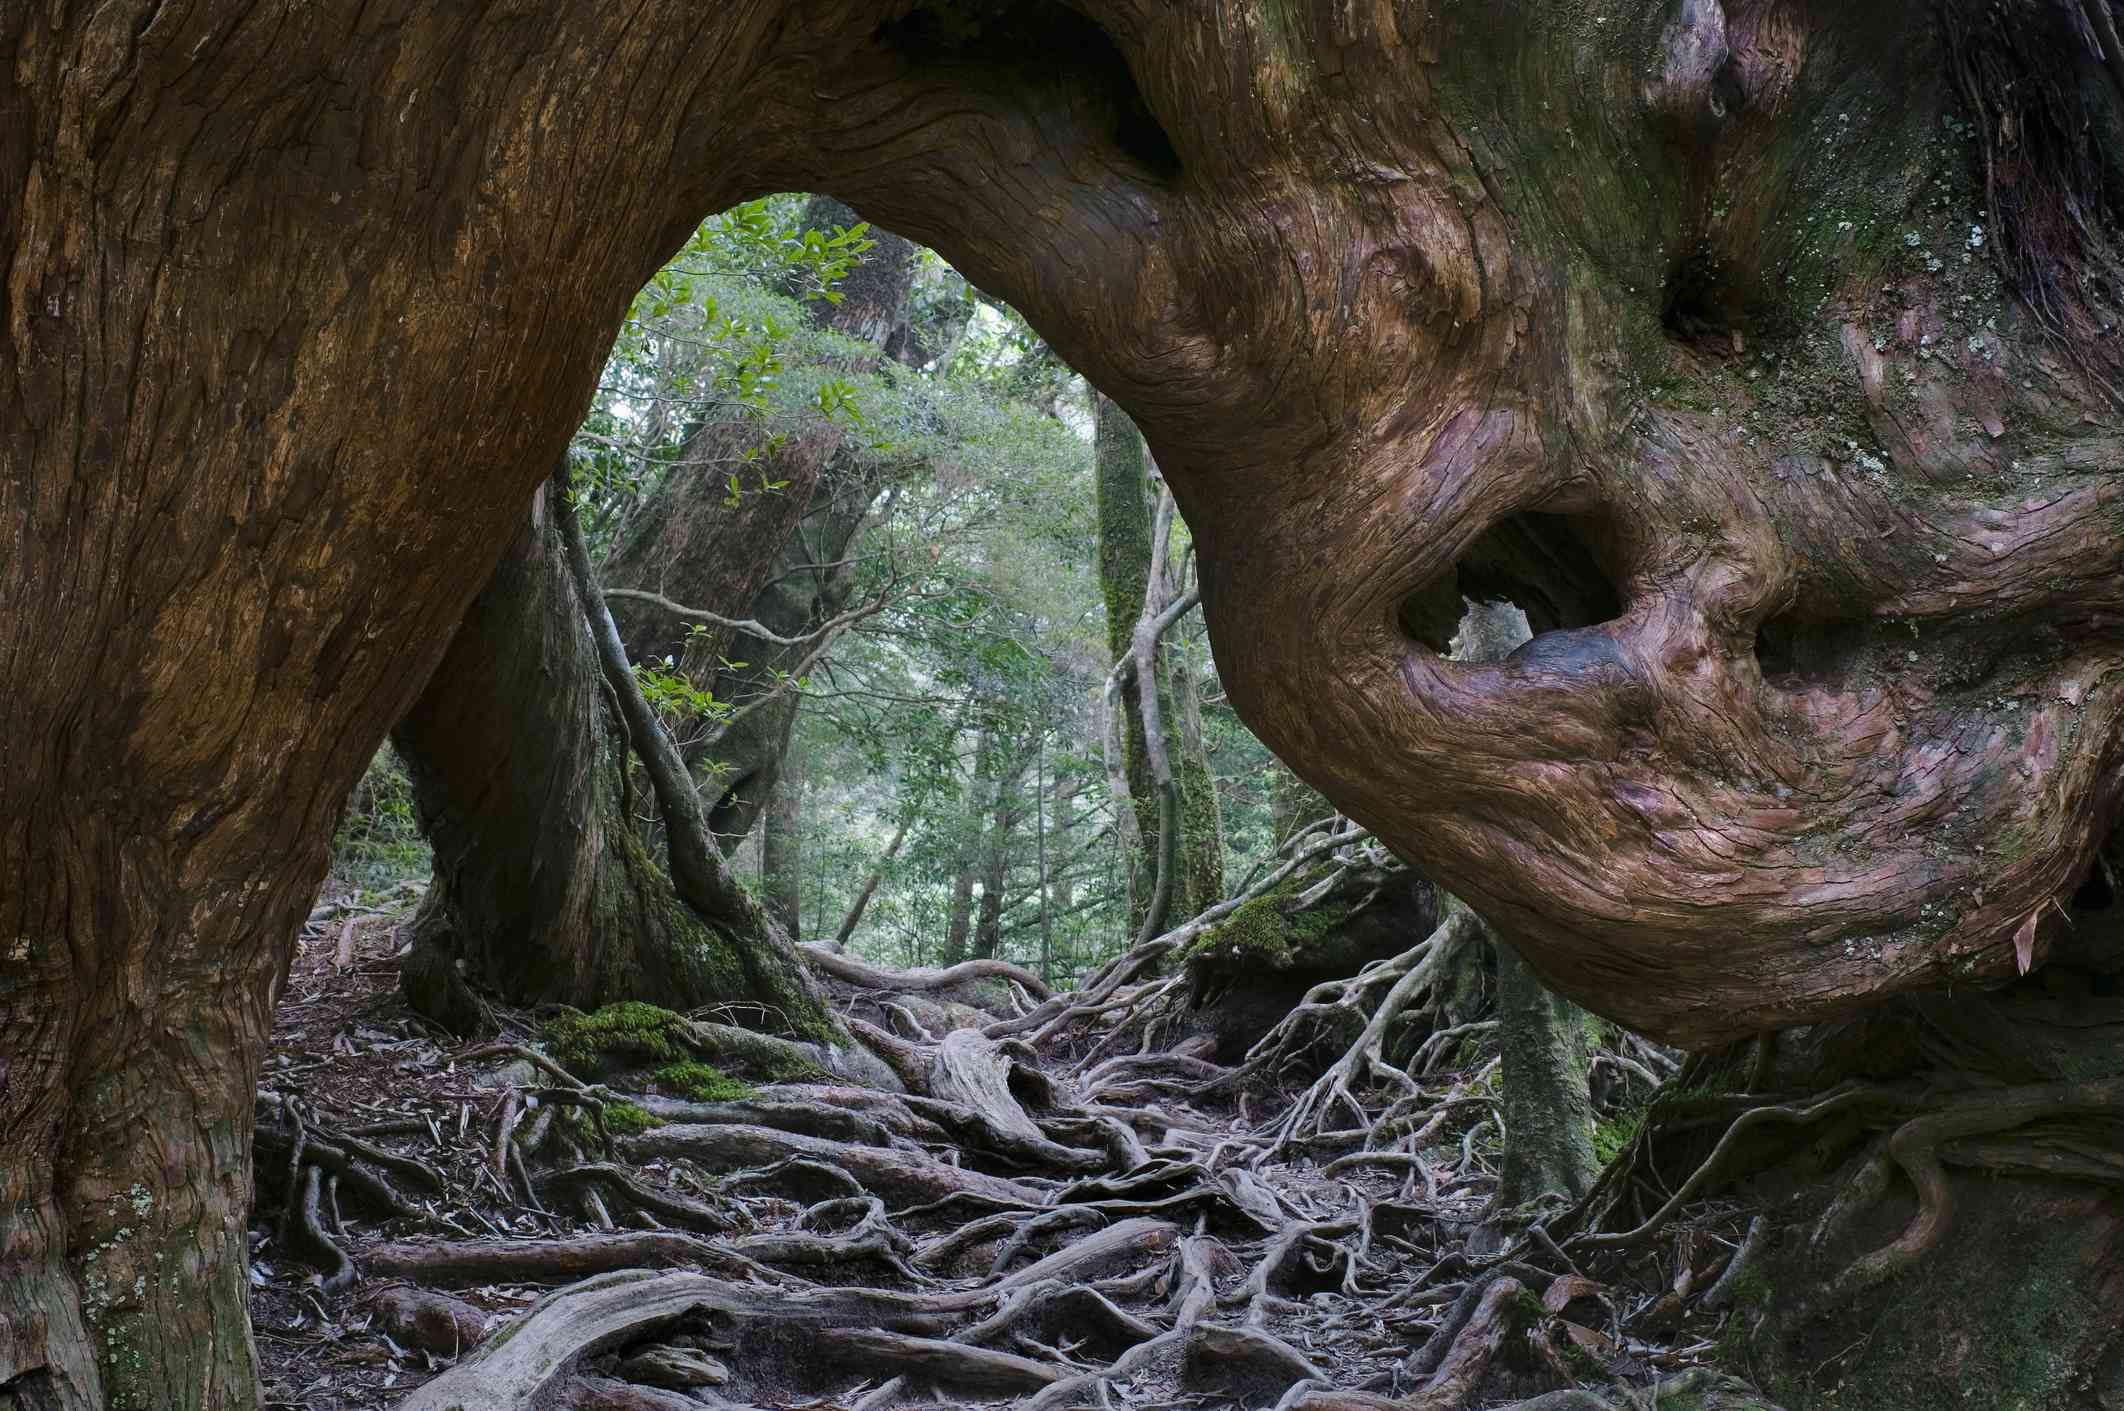 forest floor covered by winding tree roots